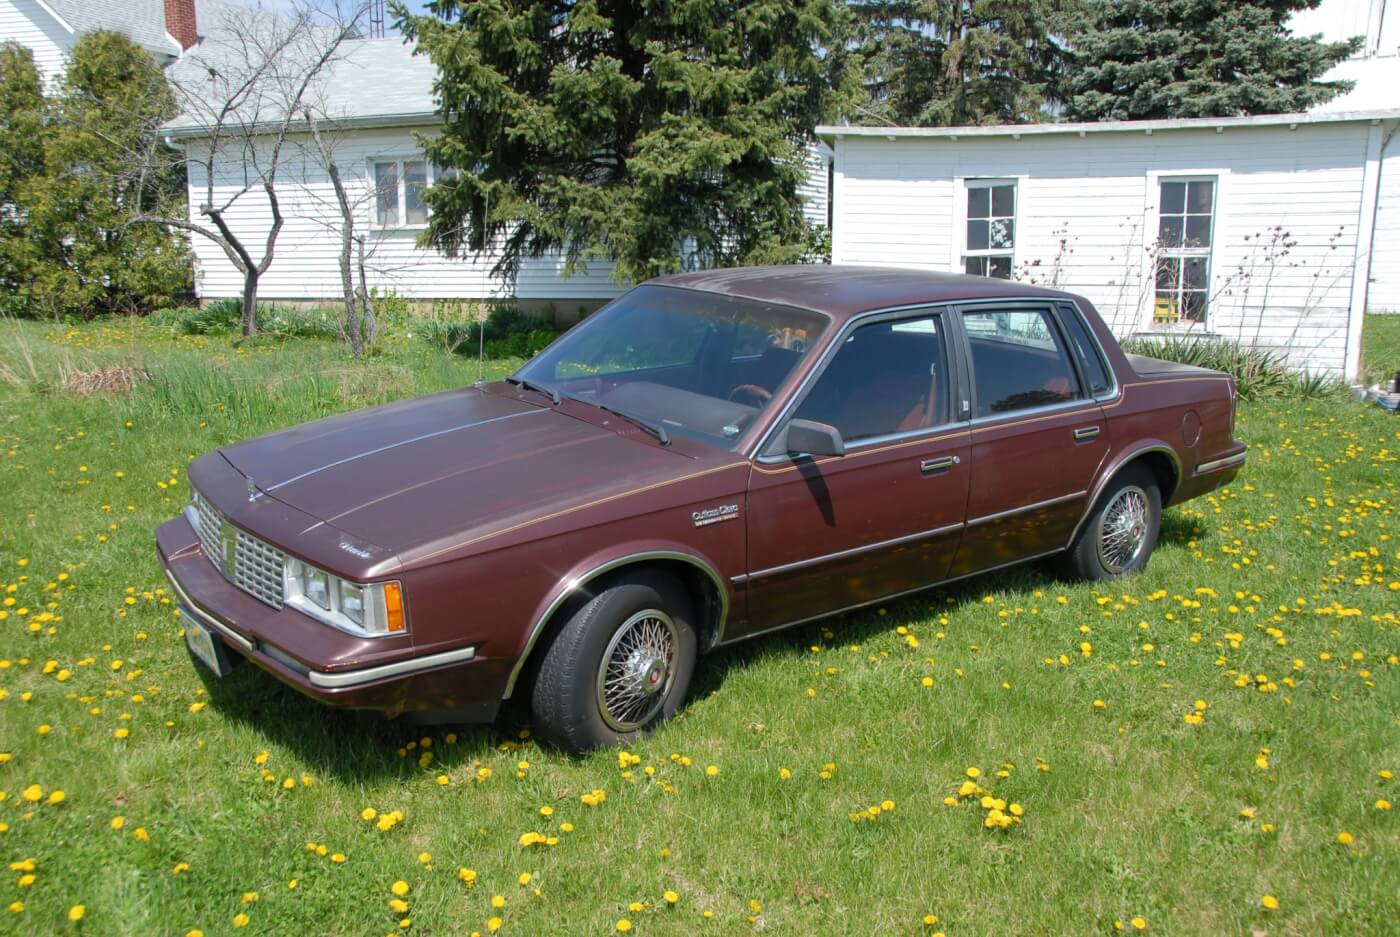 The Lt7 Front Drive V 6 From Oldsmobile 1993 Cutlass Ciera Engine Diagram Dark Maple Red Metallic Paint May Be Fading But You Can Still See Lovely